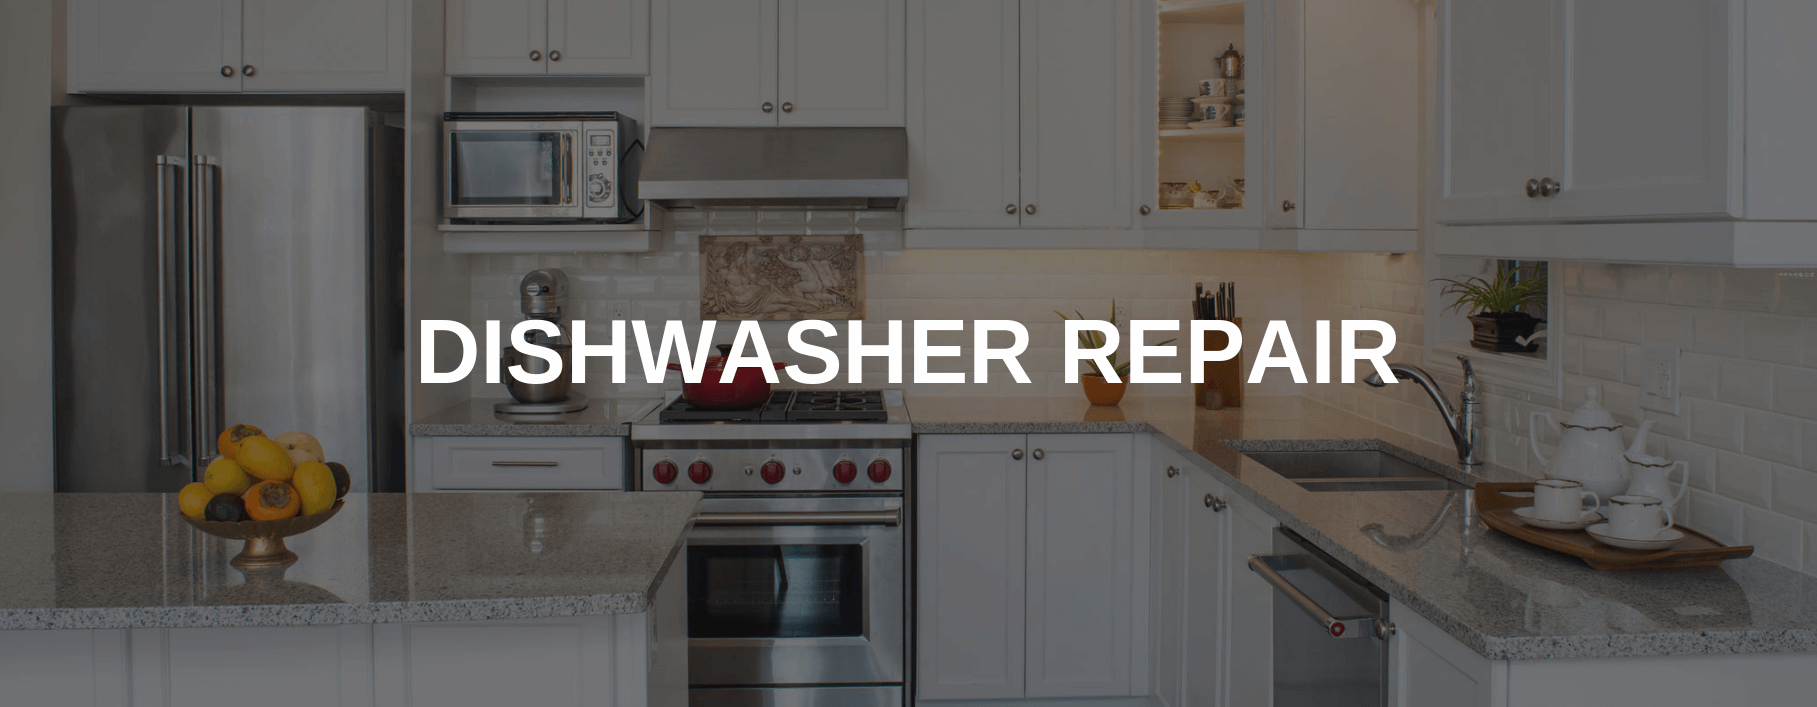 dishwasher repair manchester